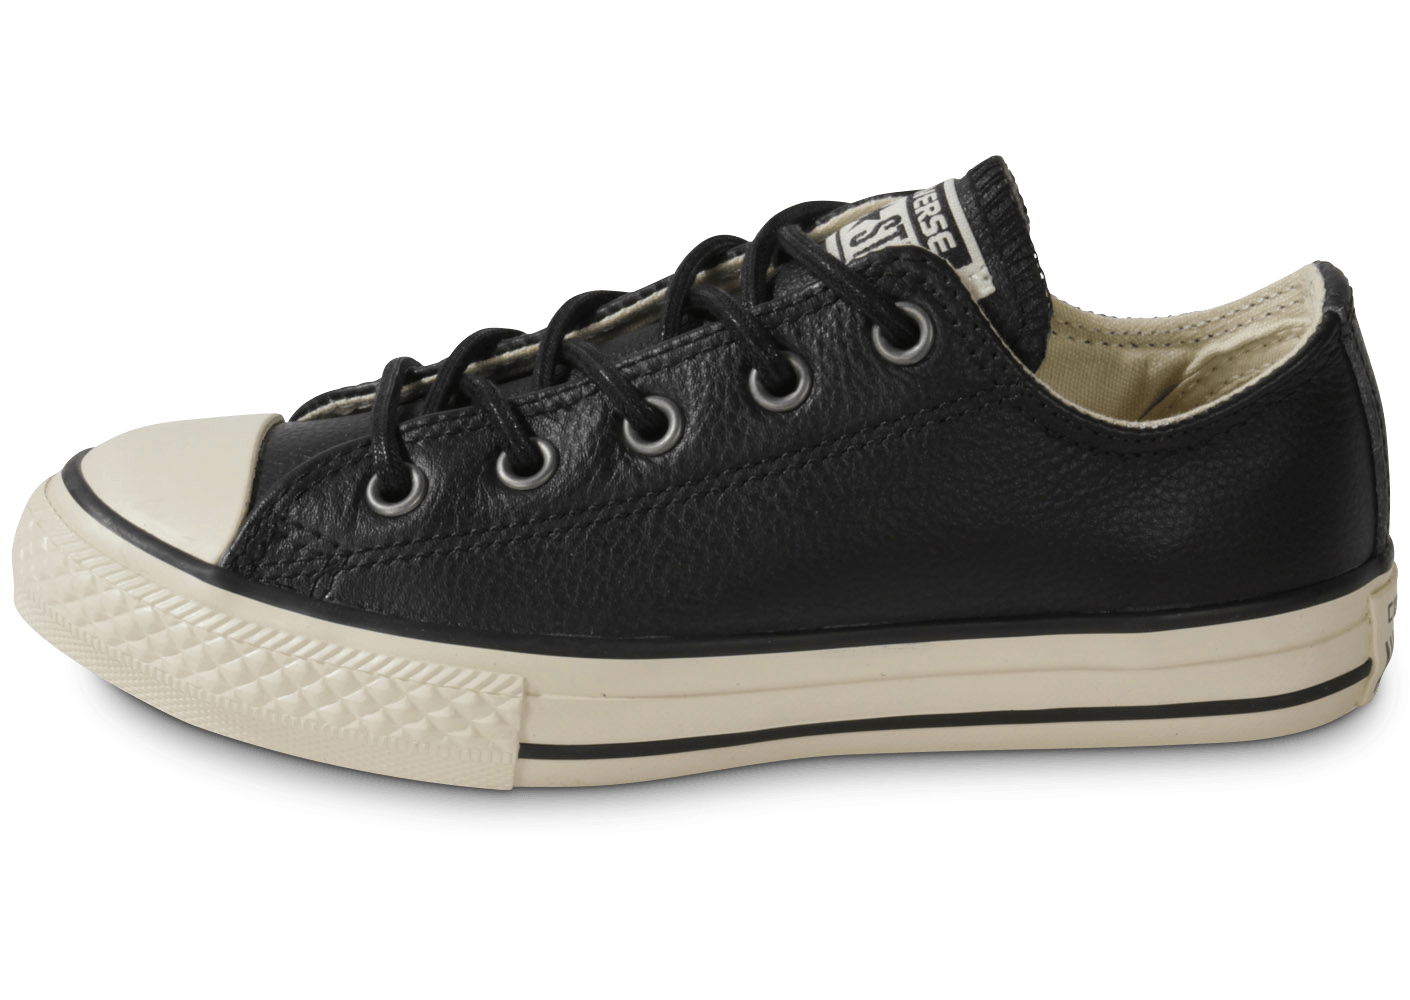 Converse Enfant Chaussure All Star Chaussure dCoBxre